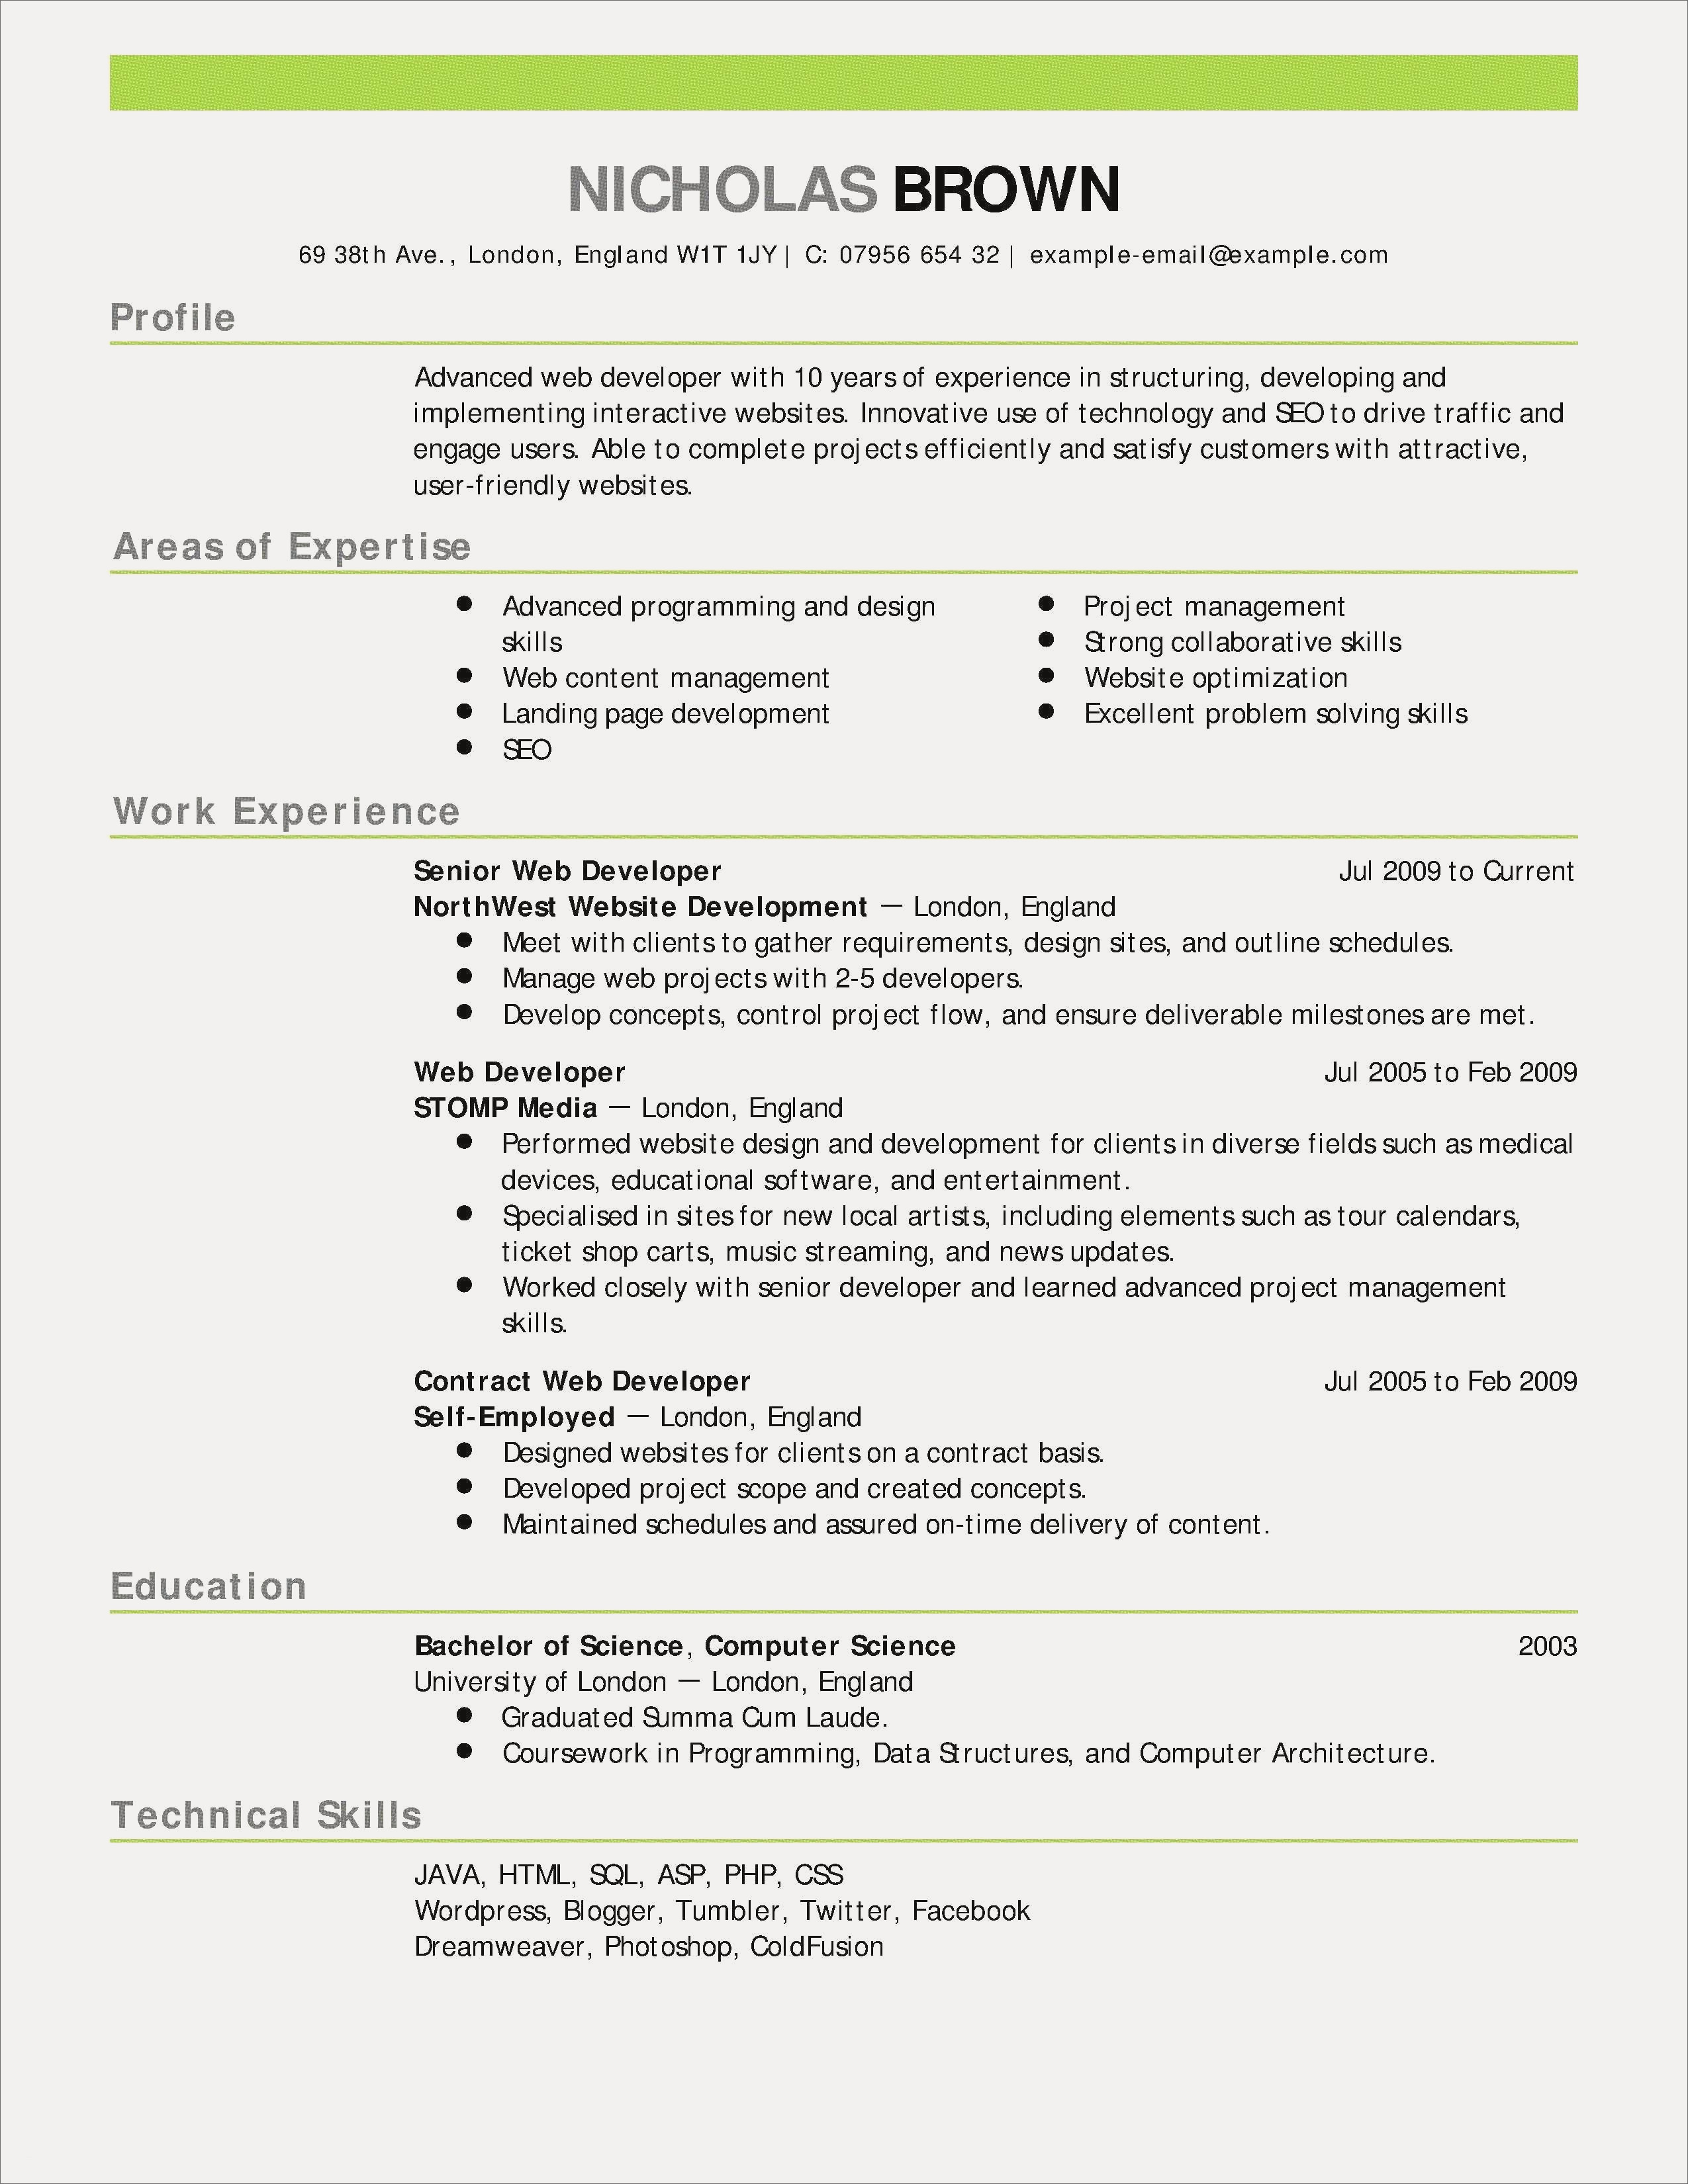 university resume template example-Sales Resumes Examples Beautiful Resume Examples 0d Good Looking 6-d